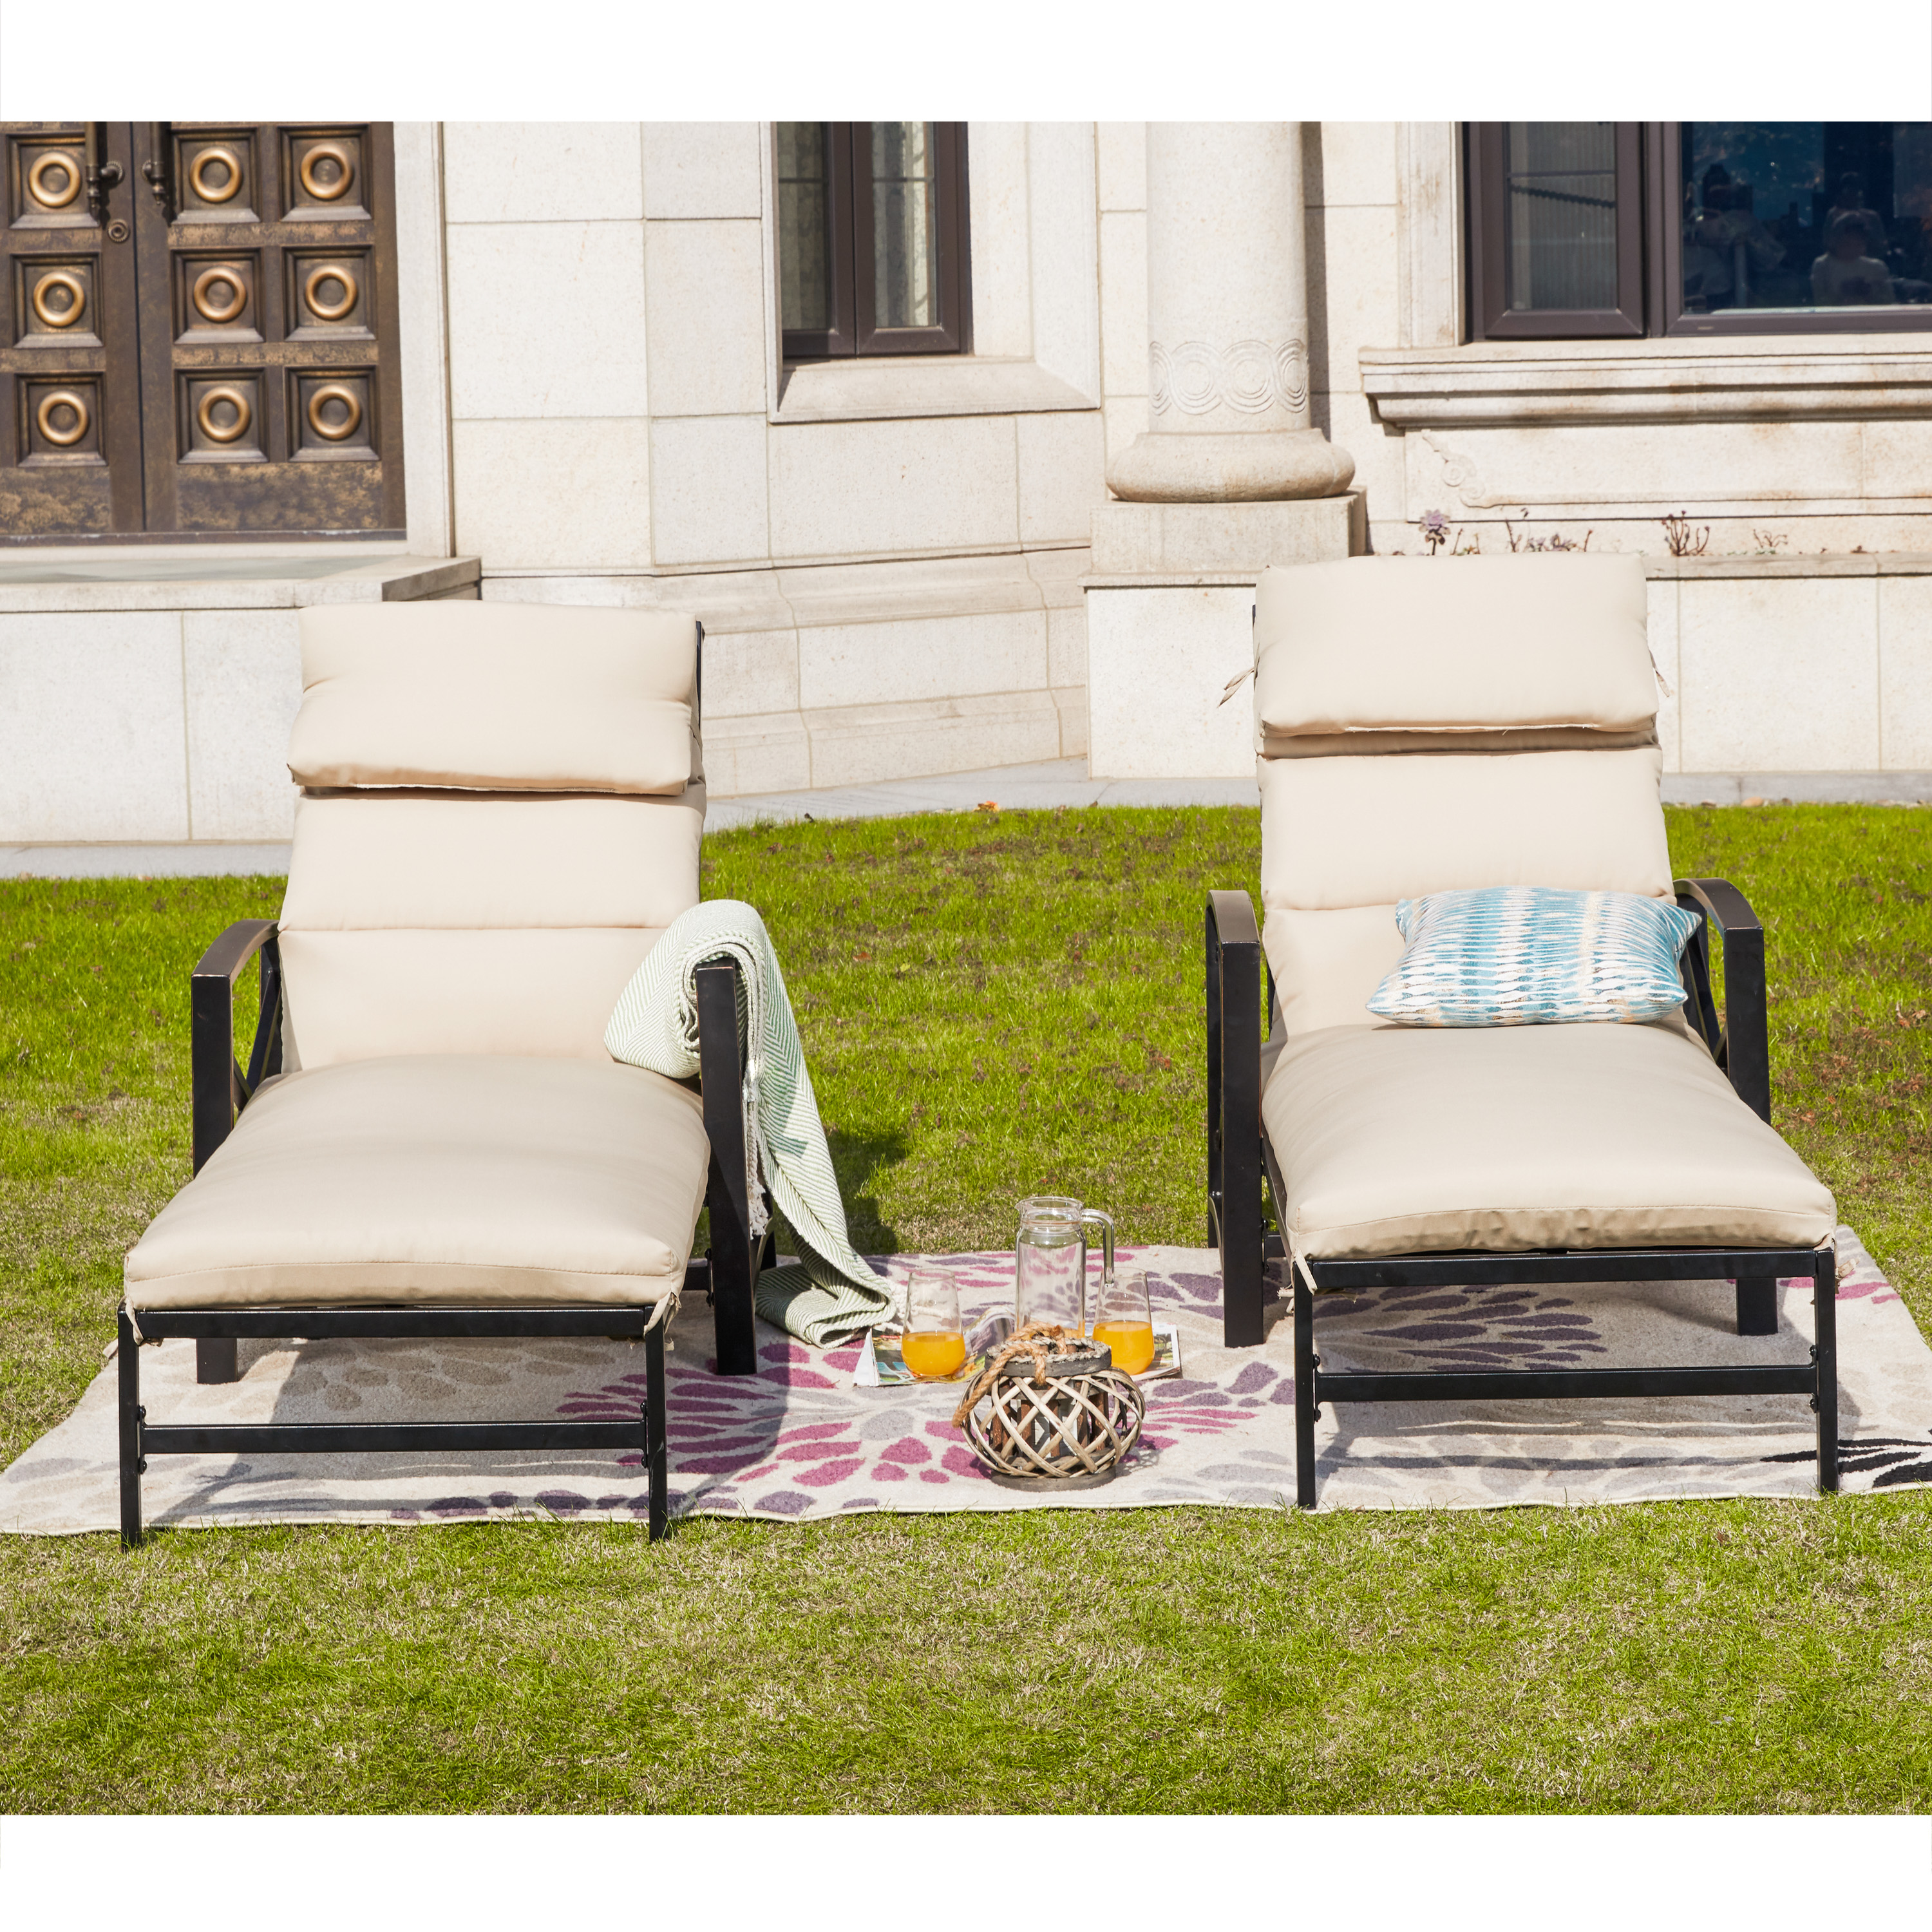 2-Piece Outdoor Lounge Chaise Set